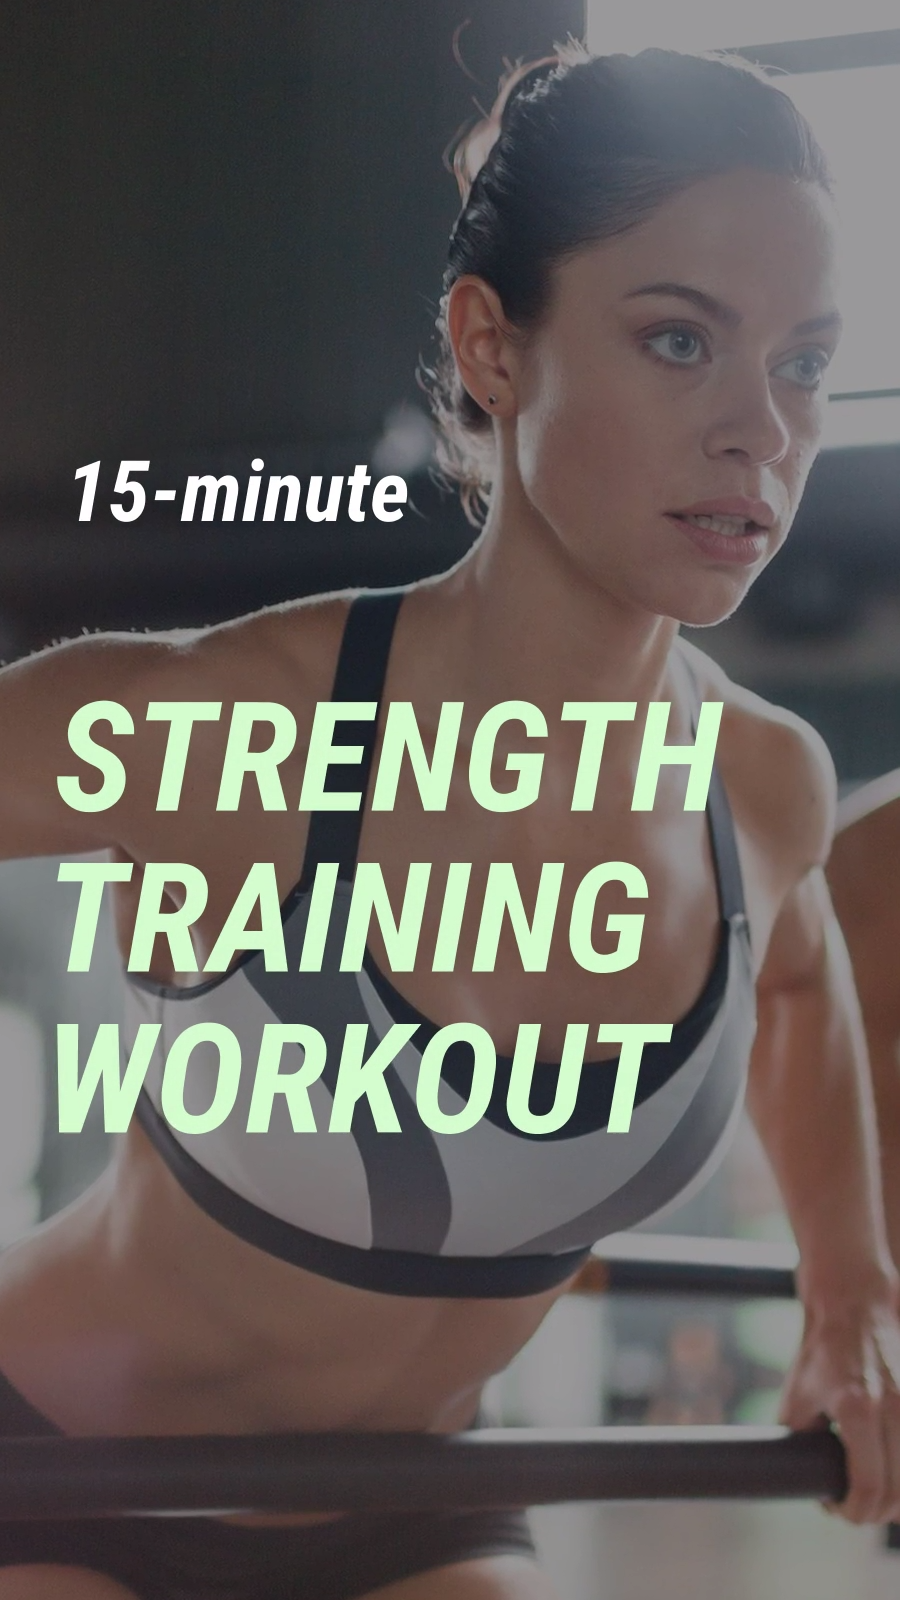 15-minute Workout IGTV Template